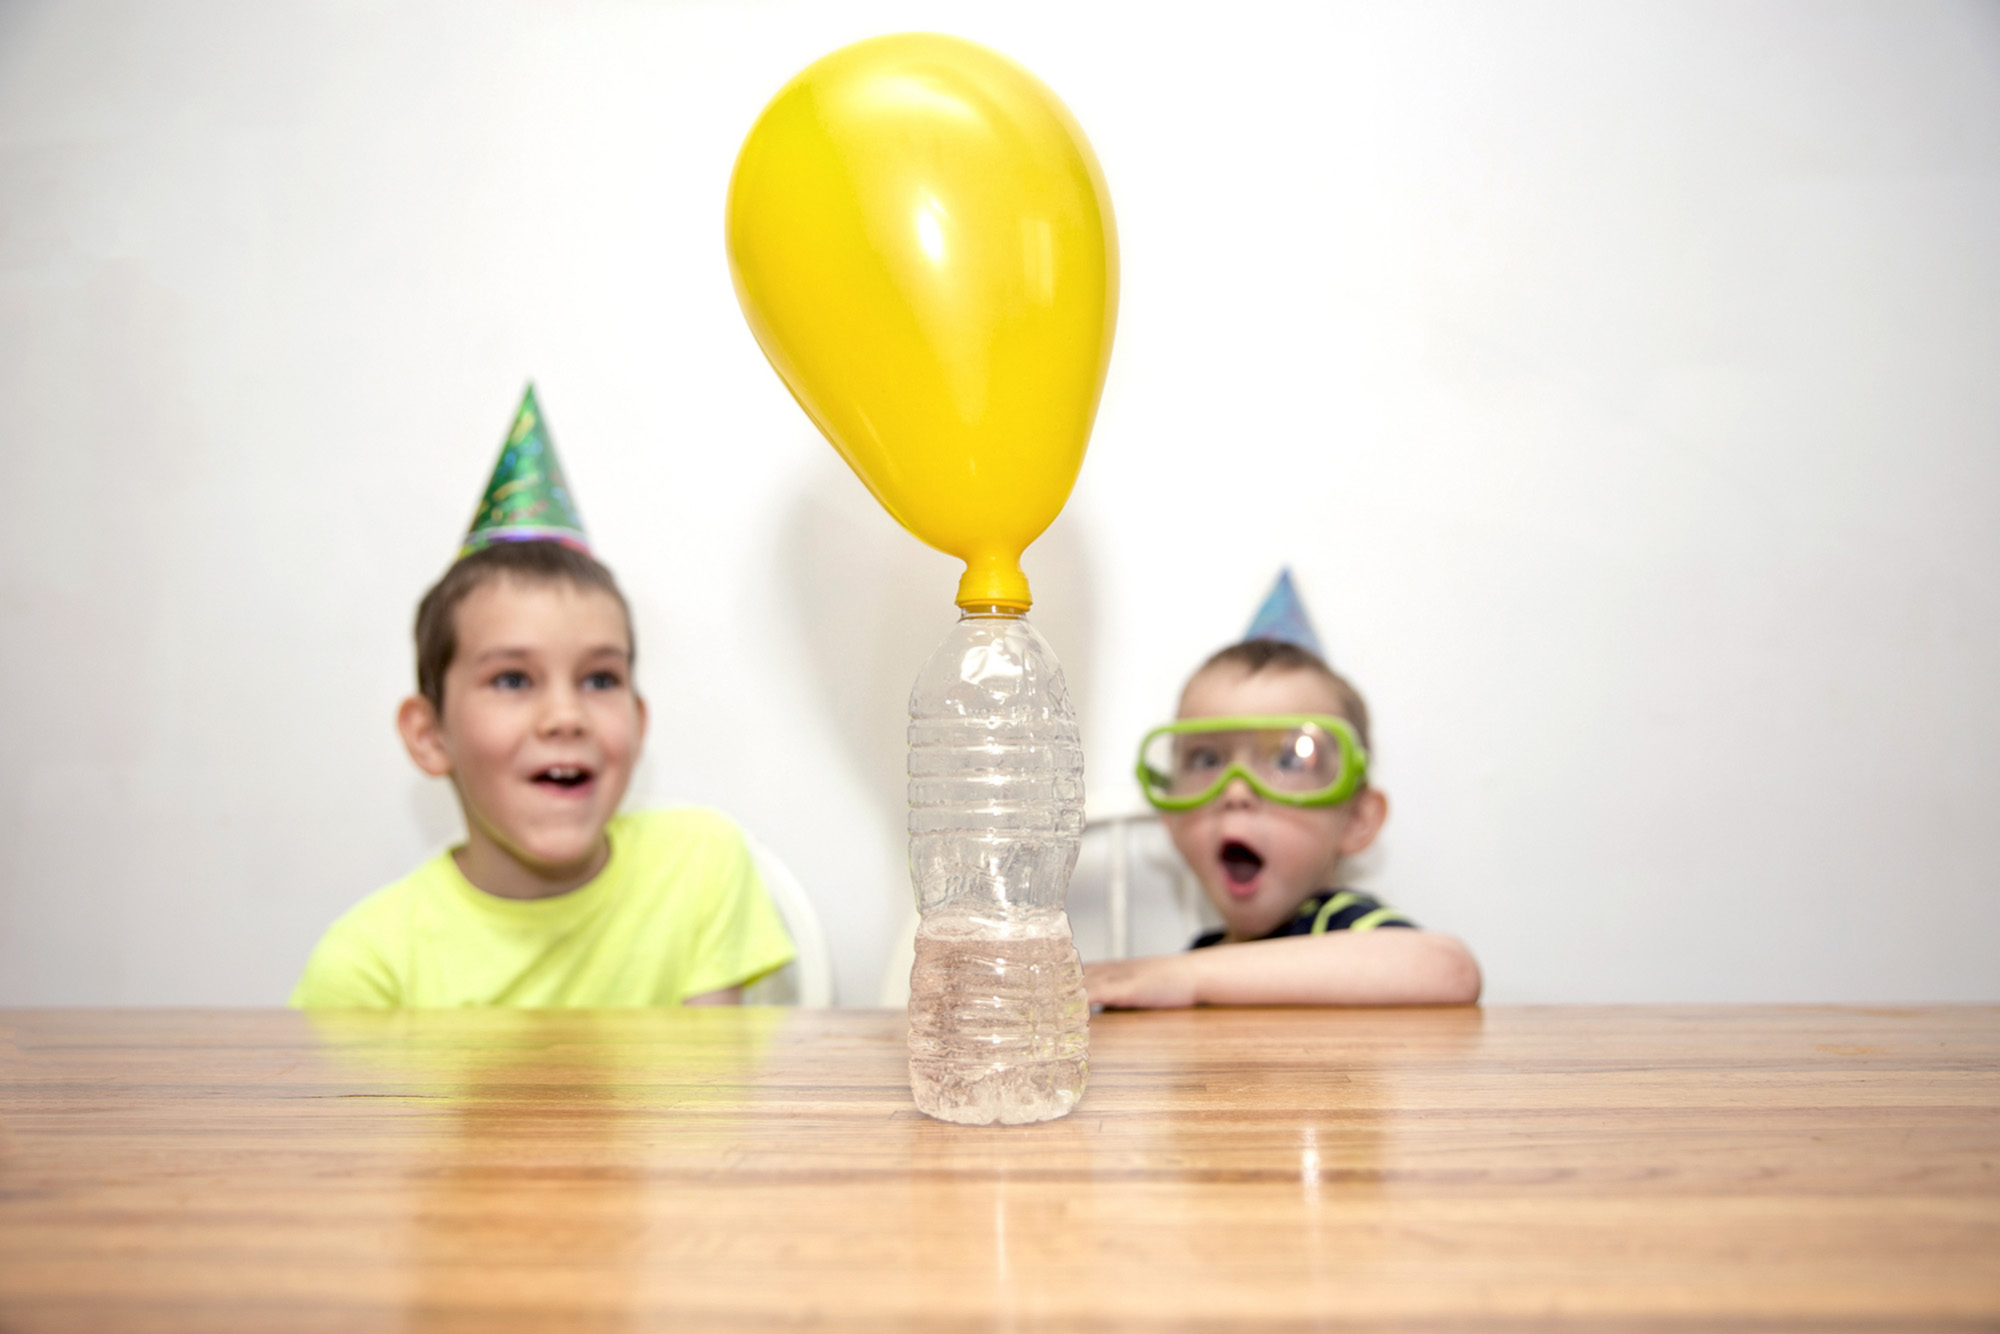 Two boys watching a chemistry experiment-72 ppi